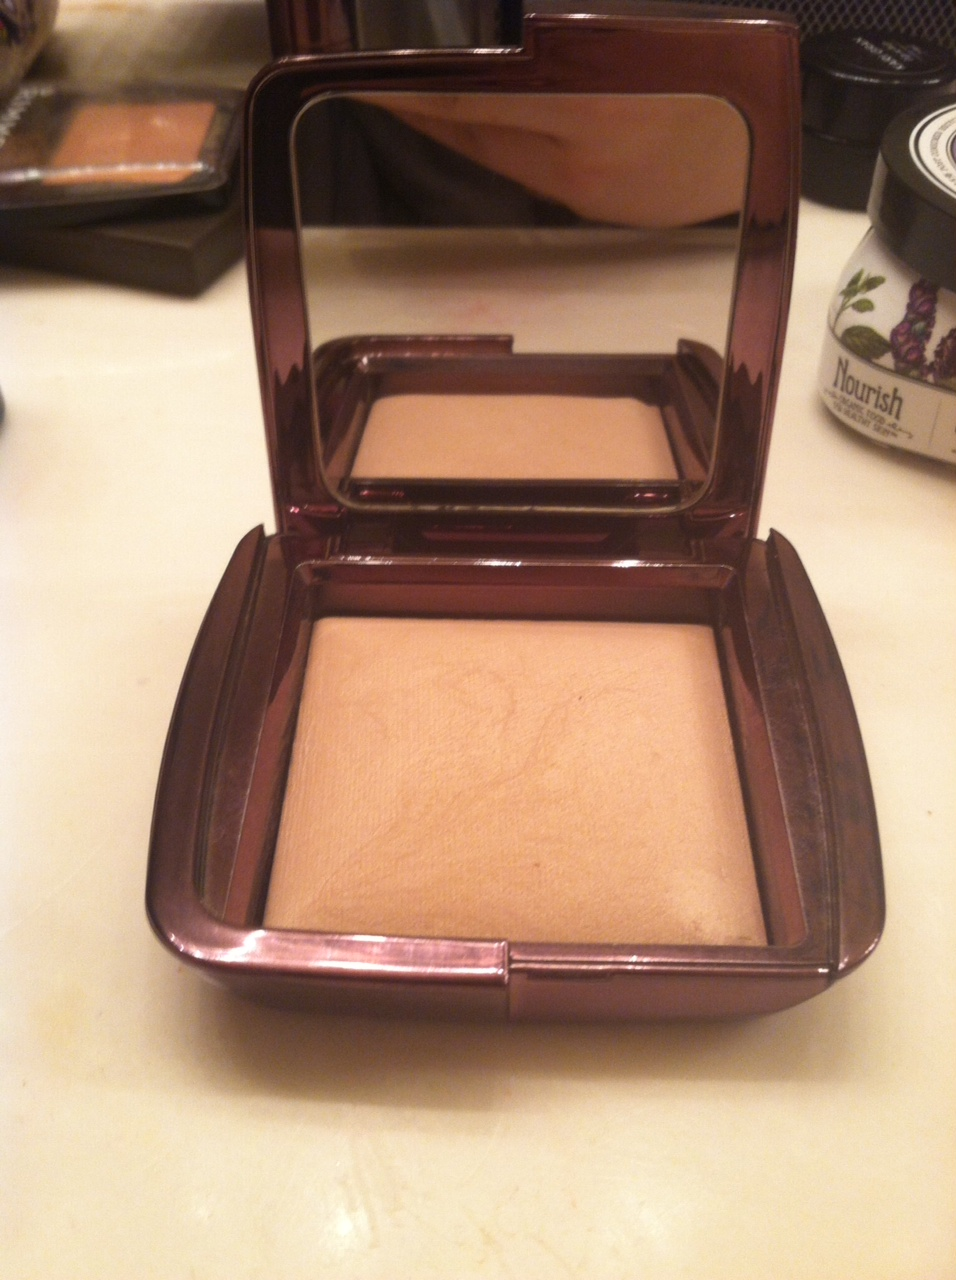 ambient lighting powder in dim light